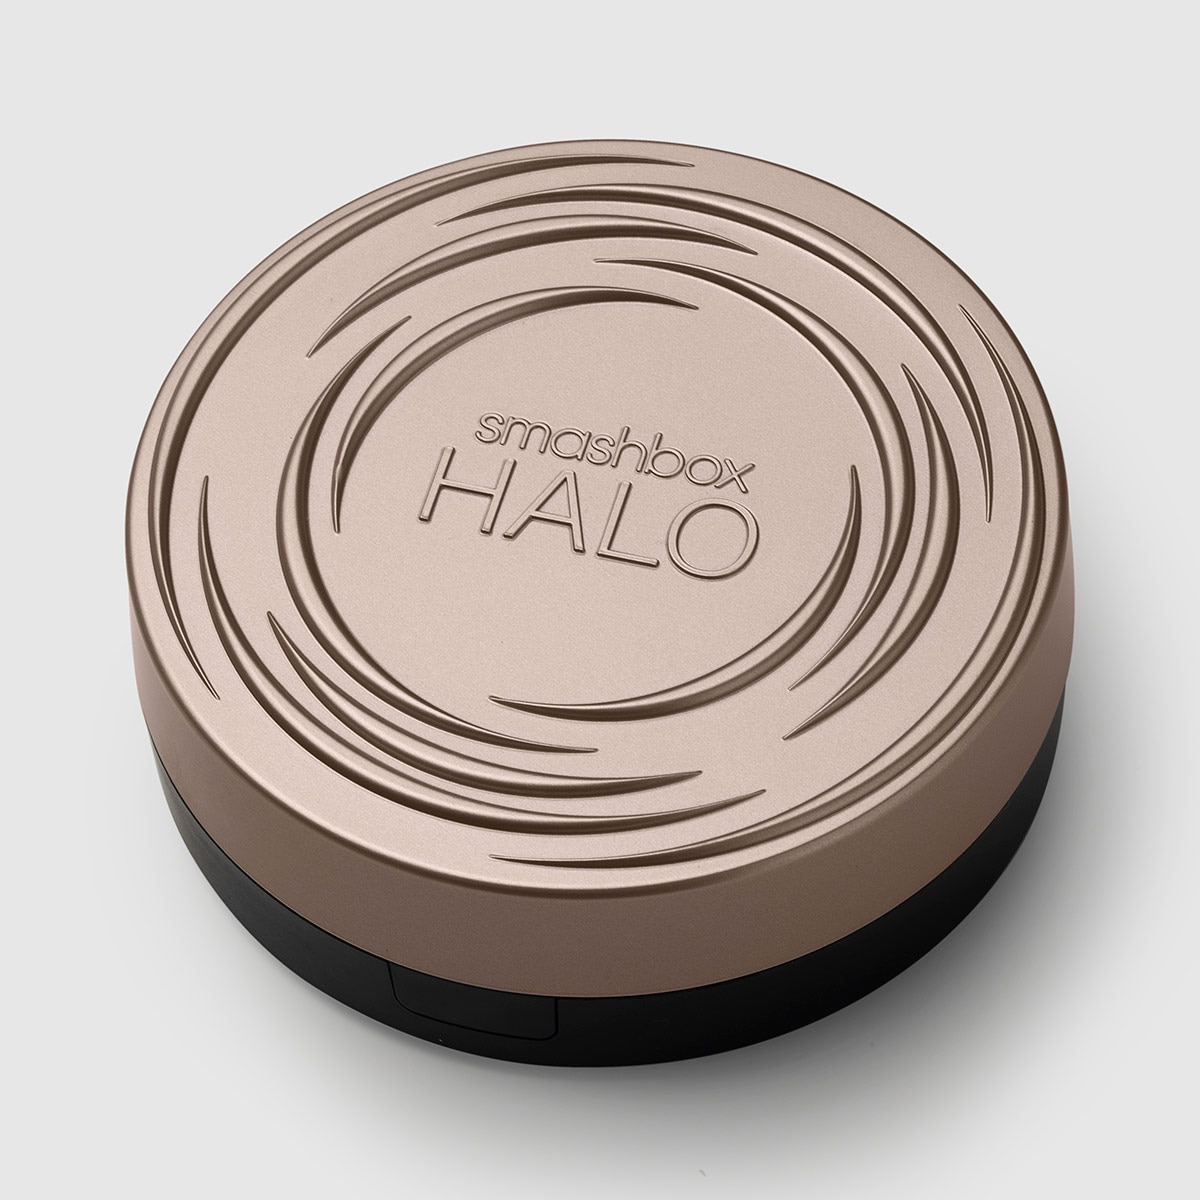 HALO POWDER FOUNDATION RESTAGE